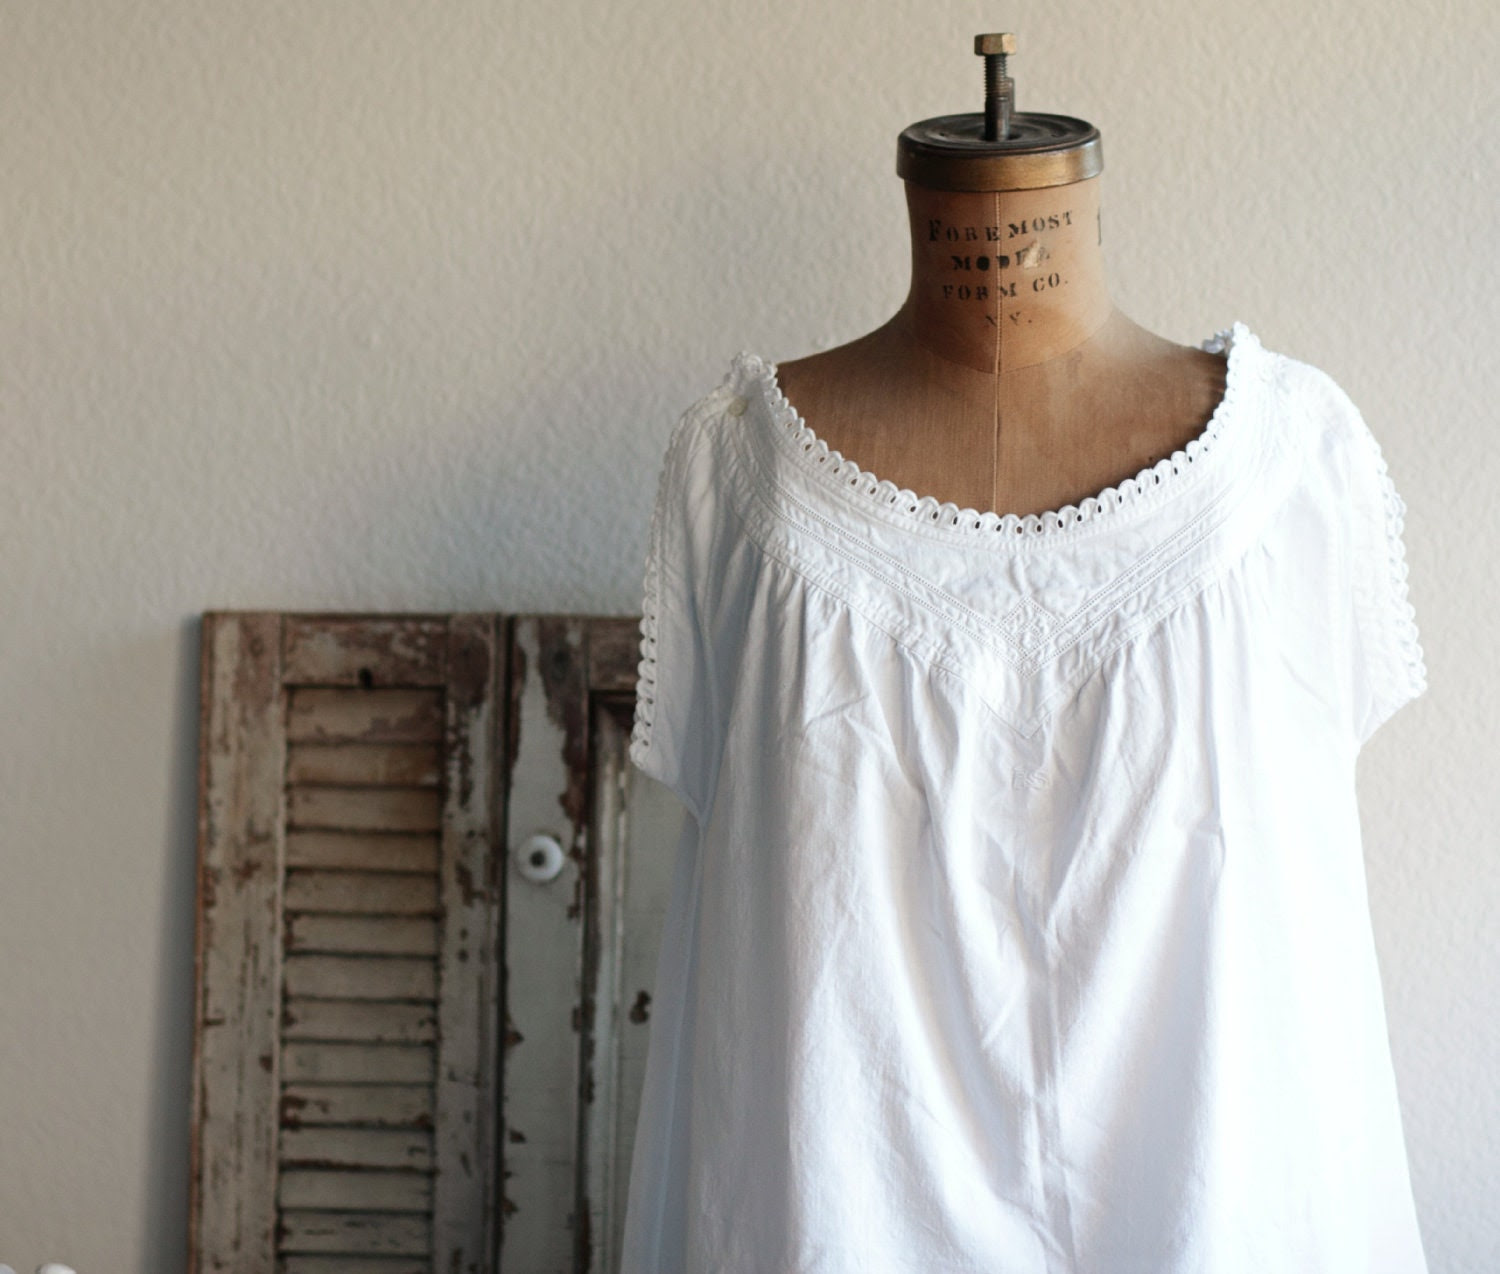 Vintage French White Cotton Night Gown With Monogram E.S.